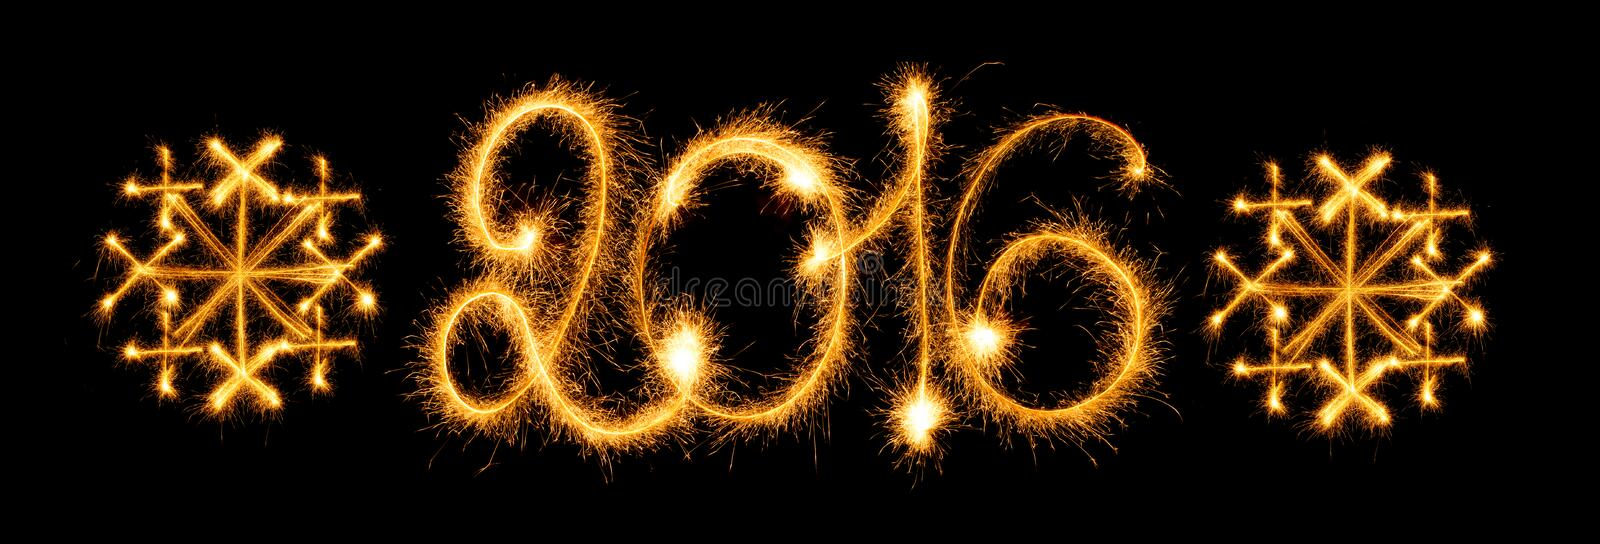 Happy New Year - 2016 with snowflakes made by sparklers on black stock photo